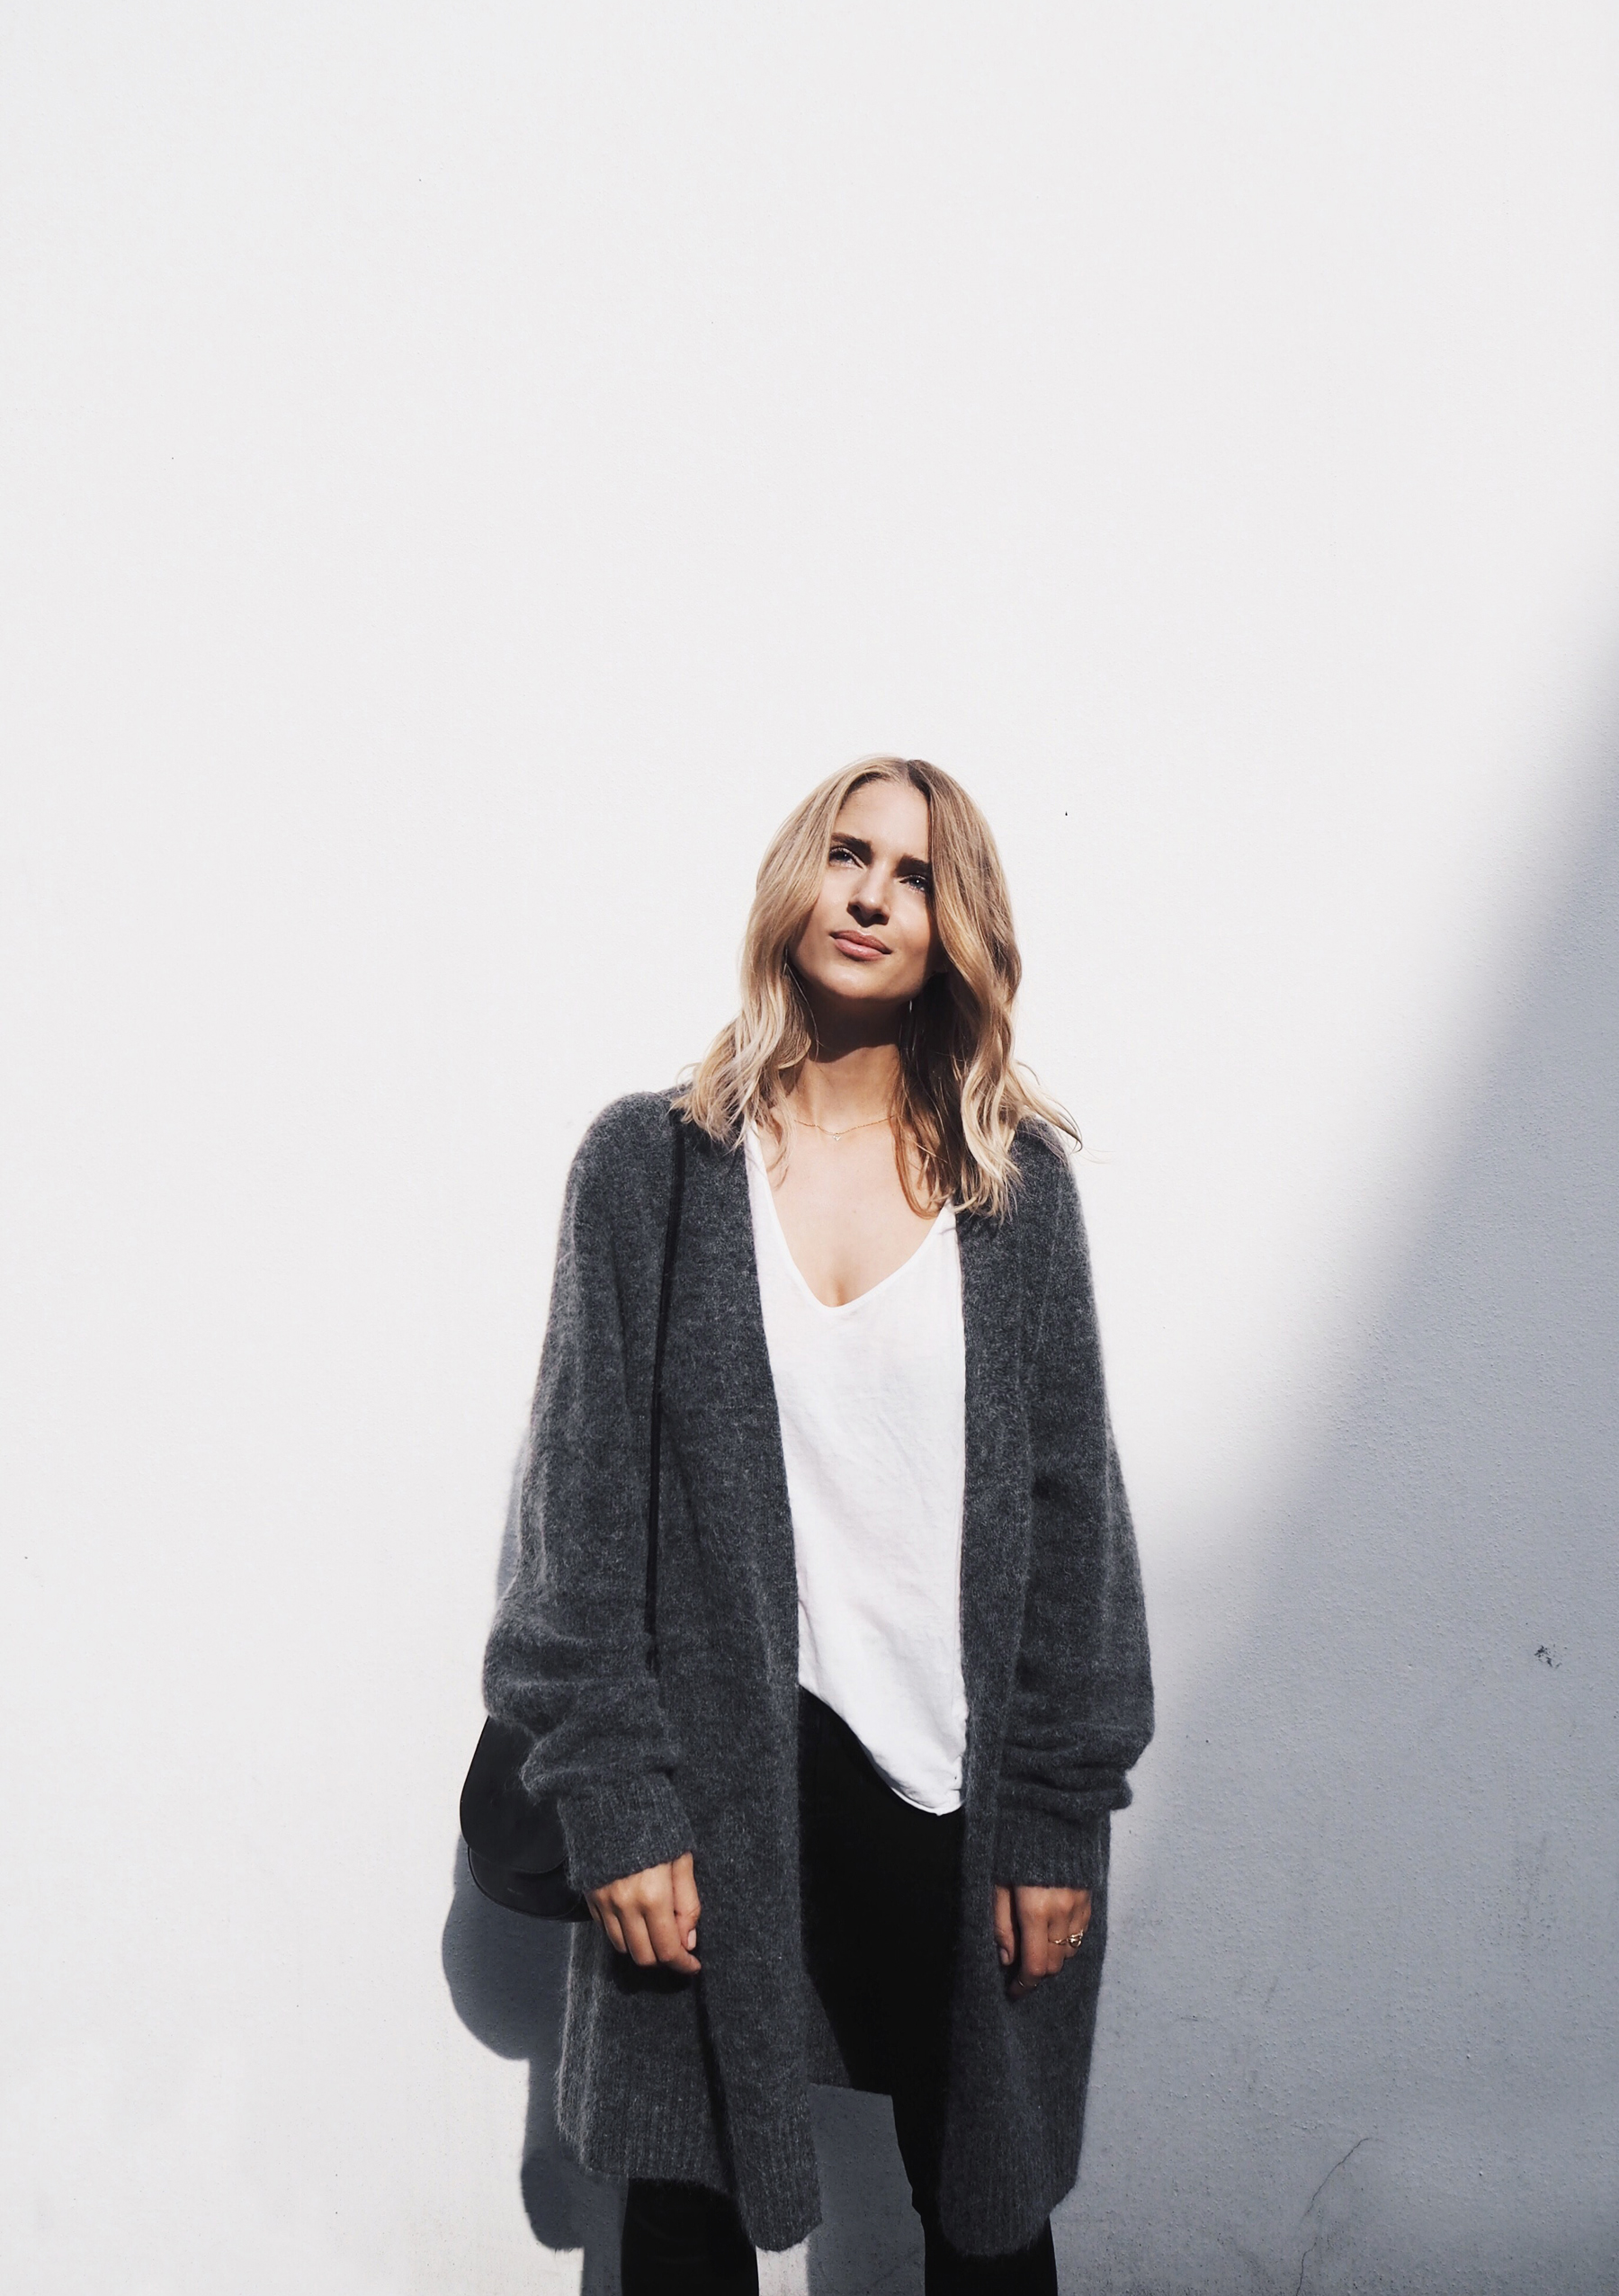 This long marl grey cardigan goes perfectly with a simple white top and black jeans combo. Via Mijaflatau.com. Cardigan: ACNE Studios, White Tee: Bassike.